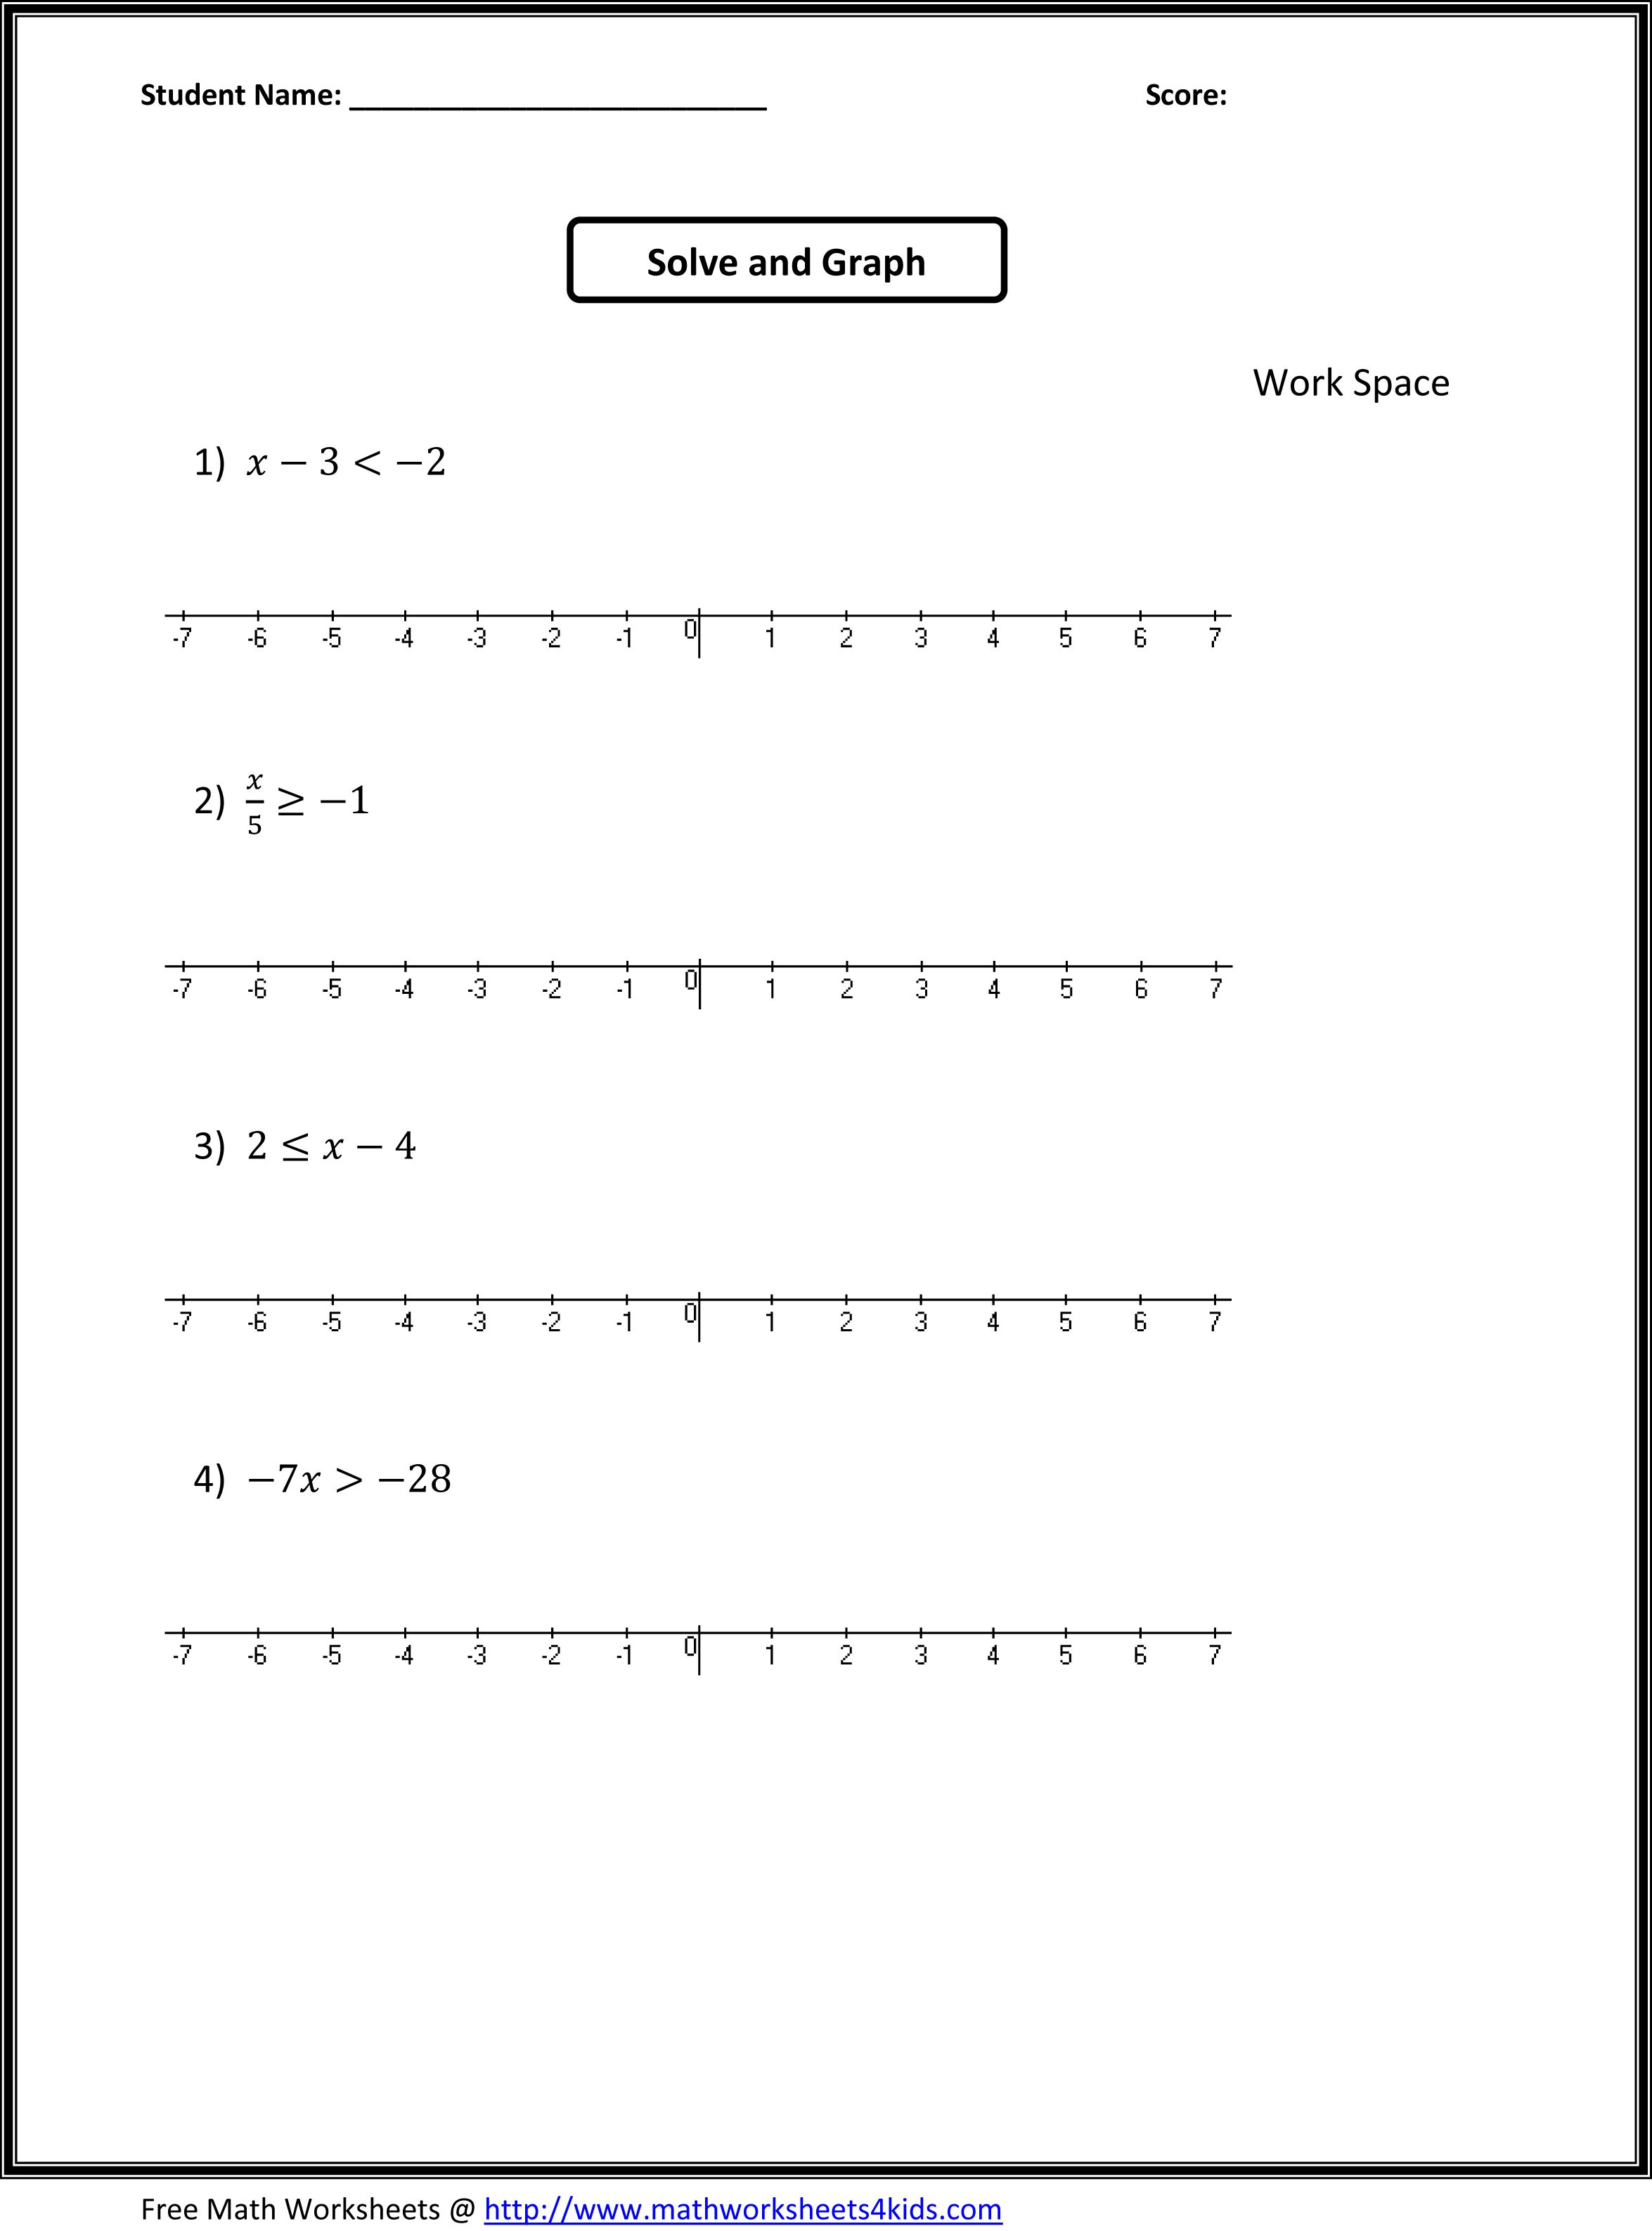 Worksheets 8th Grade Math Printable Worksheets 7th grade algebra worksheets math places worksheets